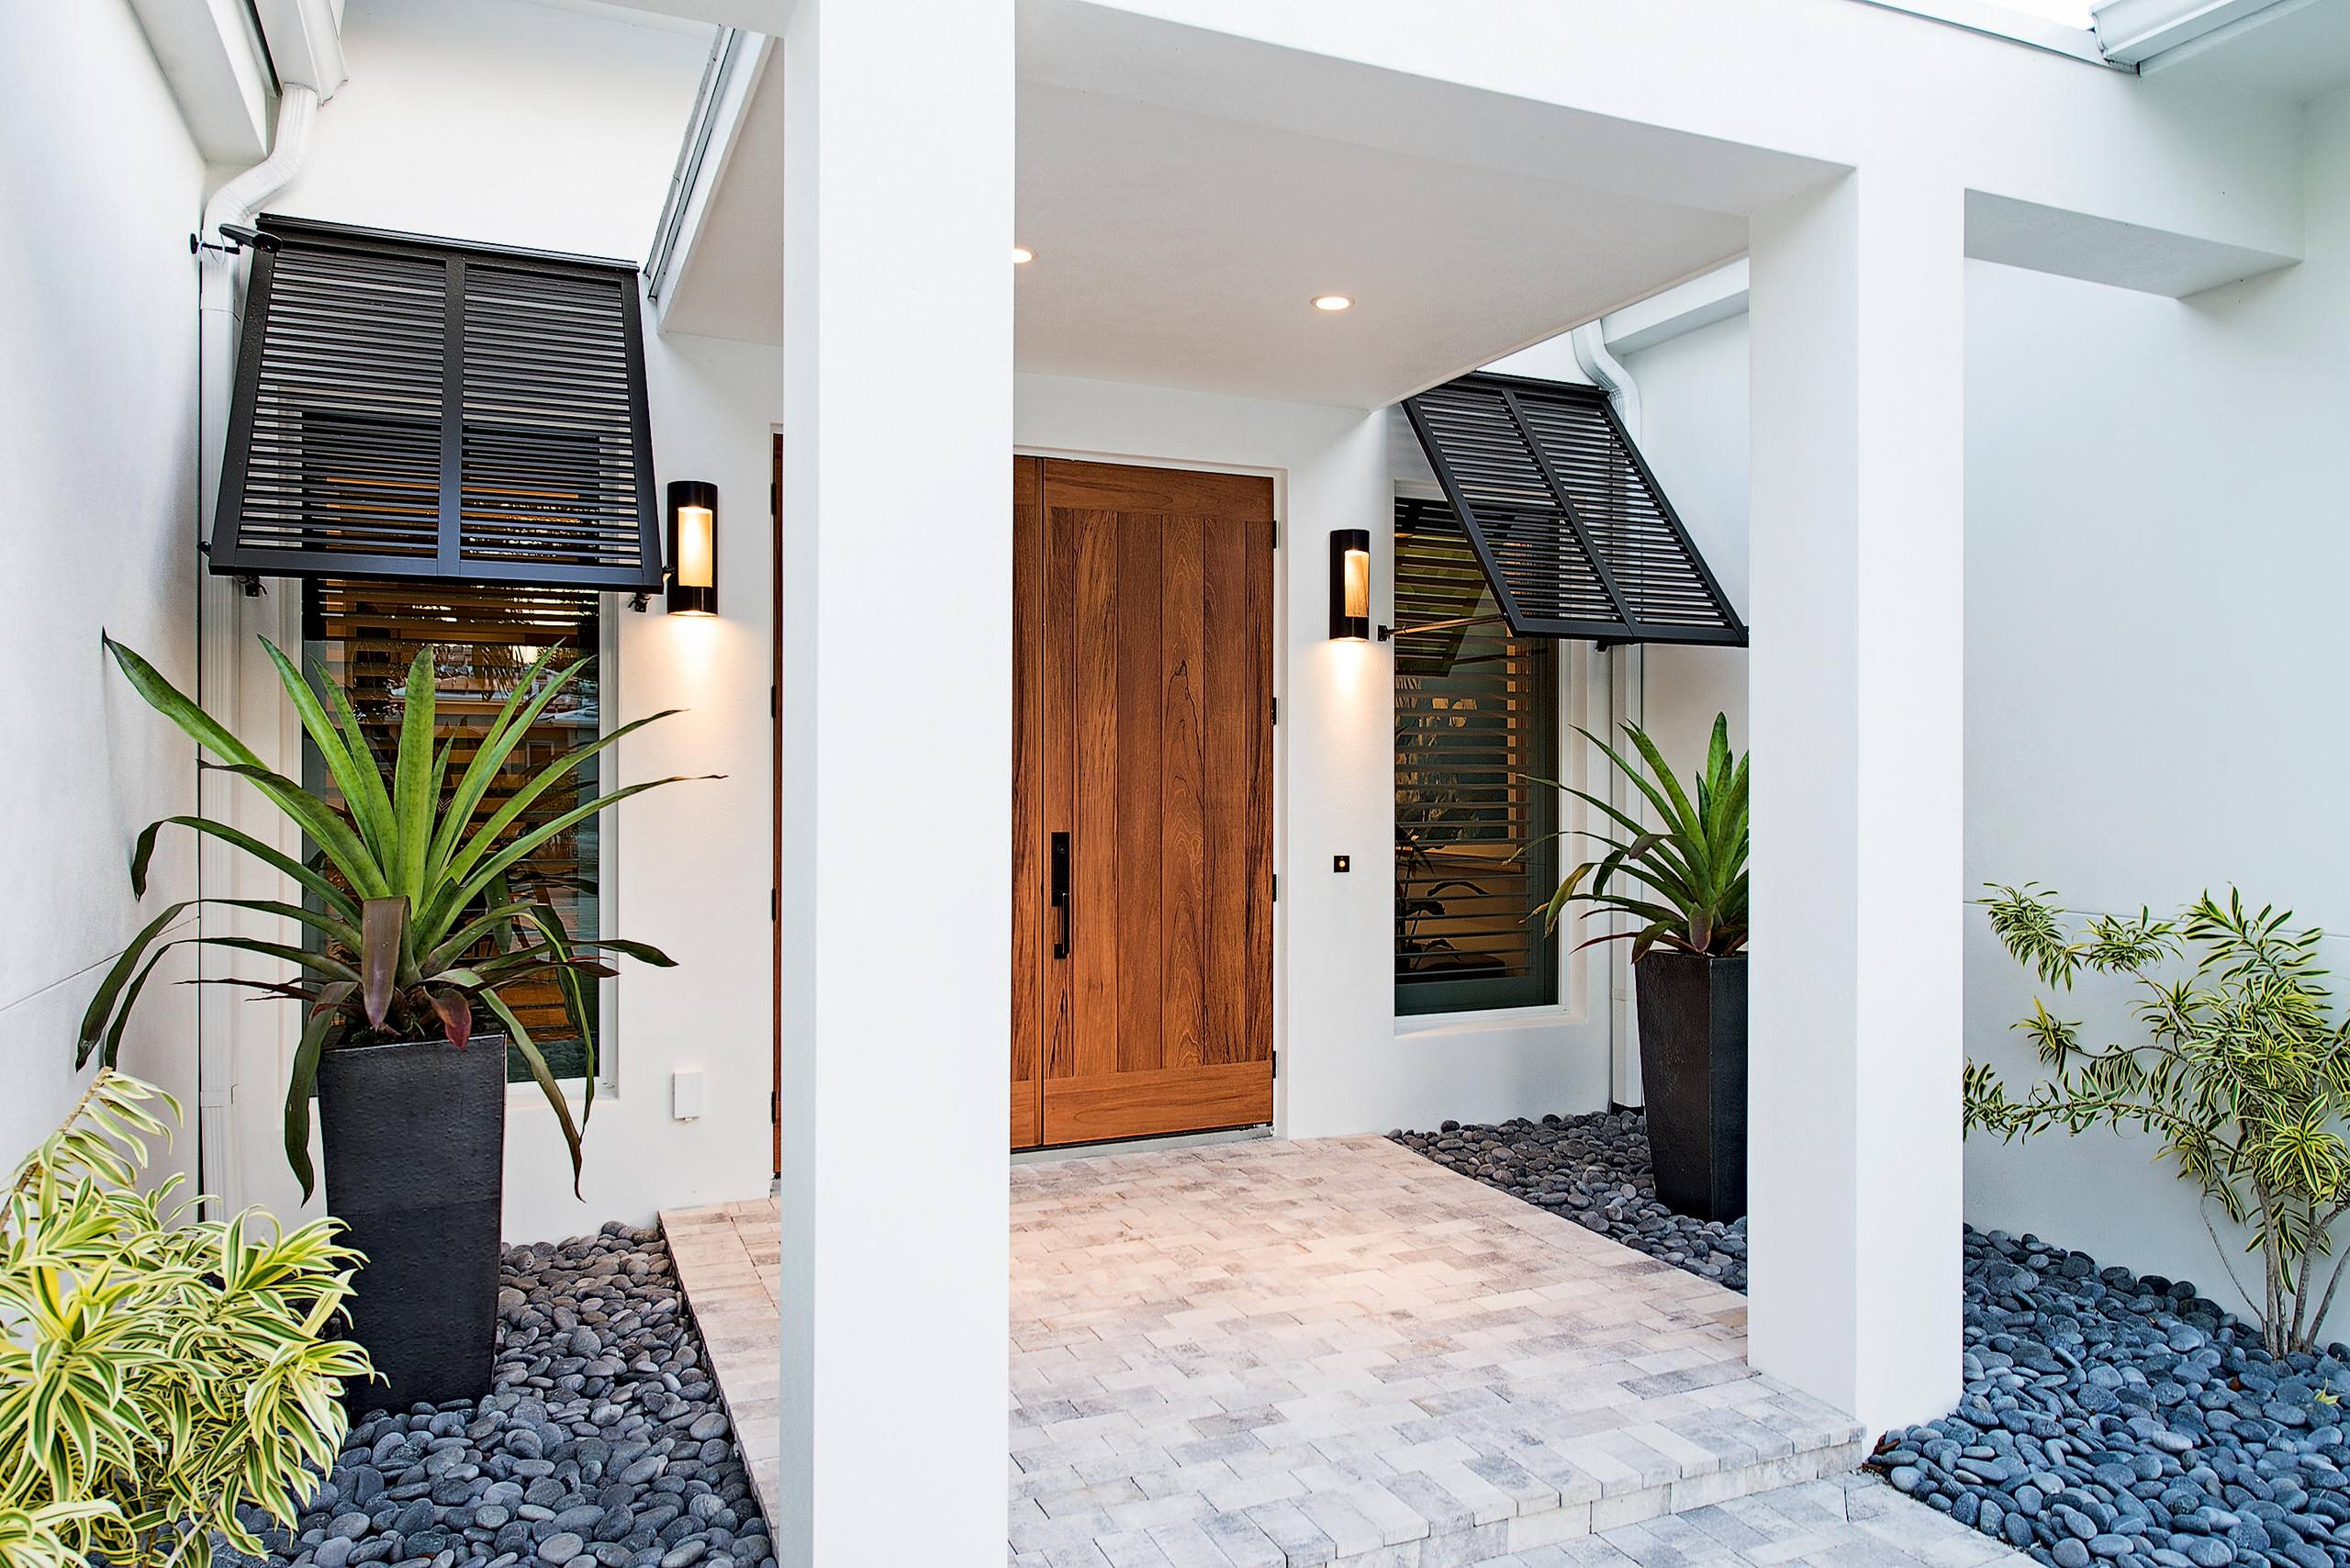 75 Beautiful Front Door Pictures Ideas May 2021 Houzz